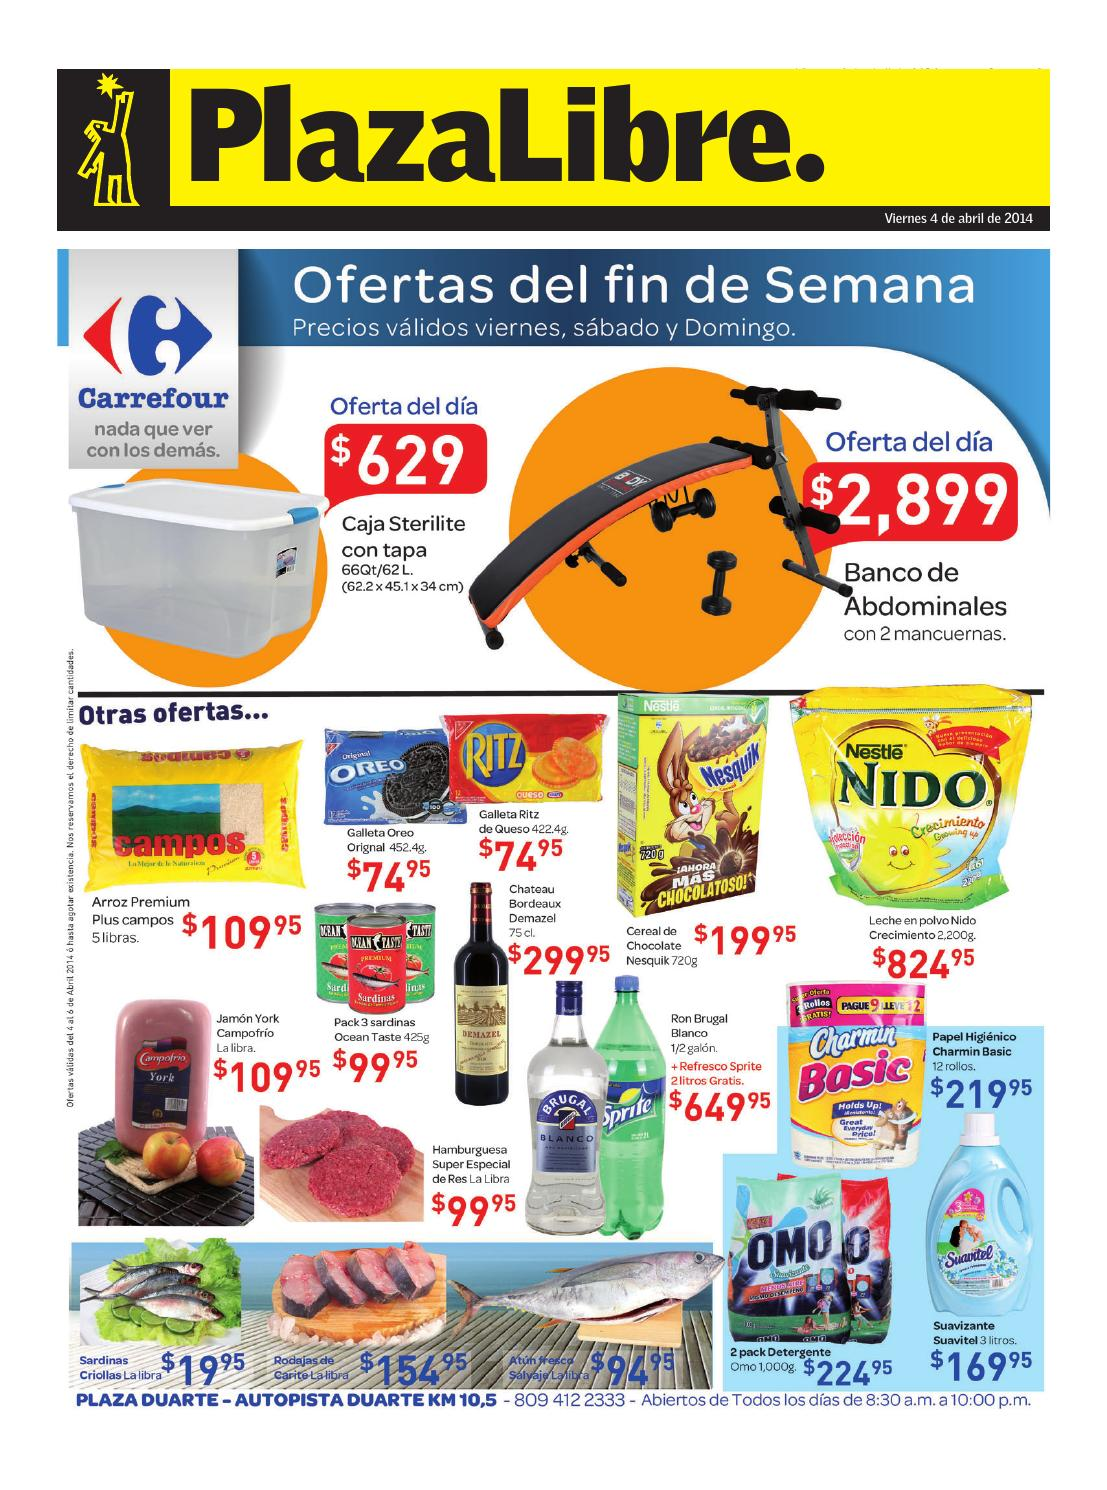 Pl20140404 by Grupo Diario Libre, S. A. - issuu